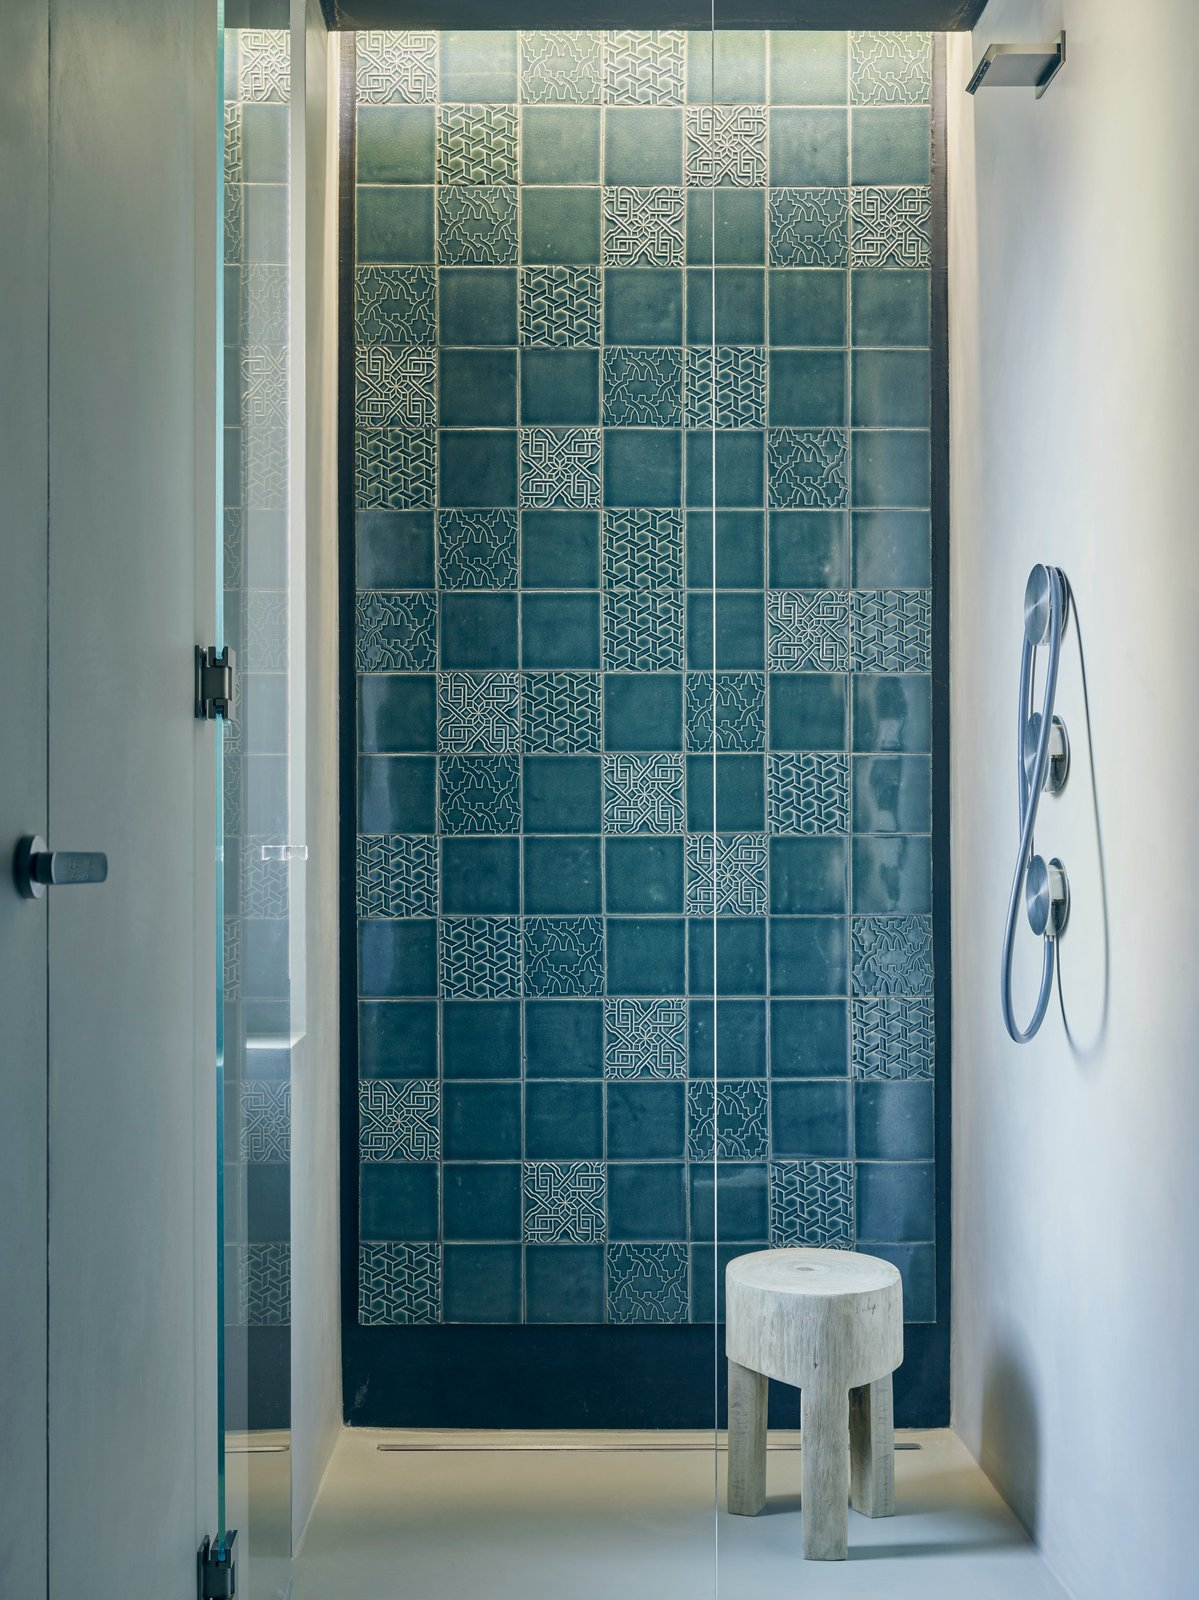 """Bath Room and Open Shower Tucked in a corner of the master bedroom, a curbless shower with Cea fixtures showcases a wall of patterned Italian tiles that coordinate with those used on the range hood in the kitchen.The designers sought to imbue the apartment's minimalist framework with a handcrafted touch. """"We wanted to add natural and warm elements to the palette,"""" Di Stefano says.   Photo 10 of 15 in This Growing Family Maximizes Every Last Inch in Their 850-Square-Foot Apartment"""